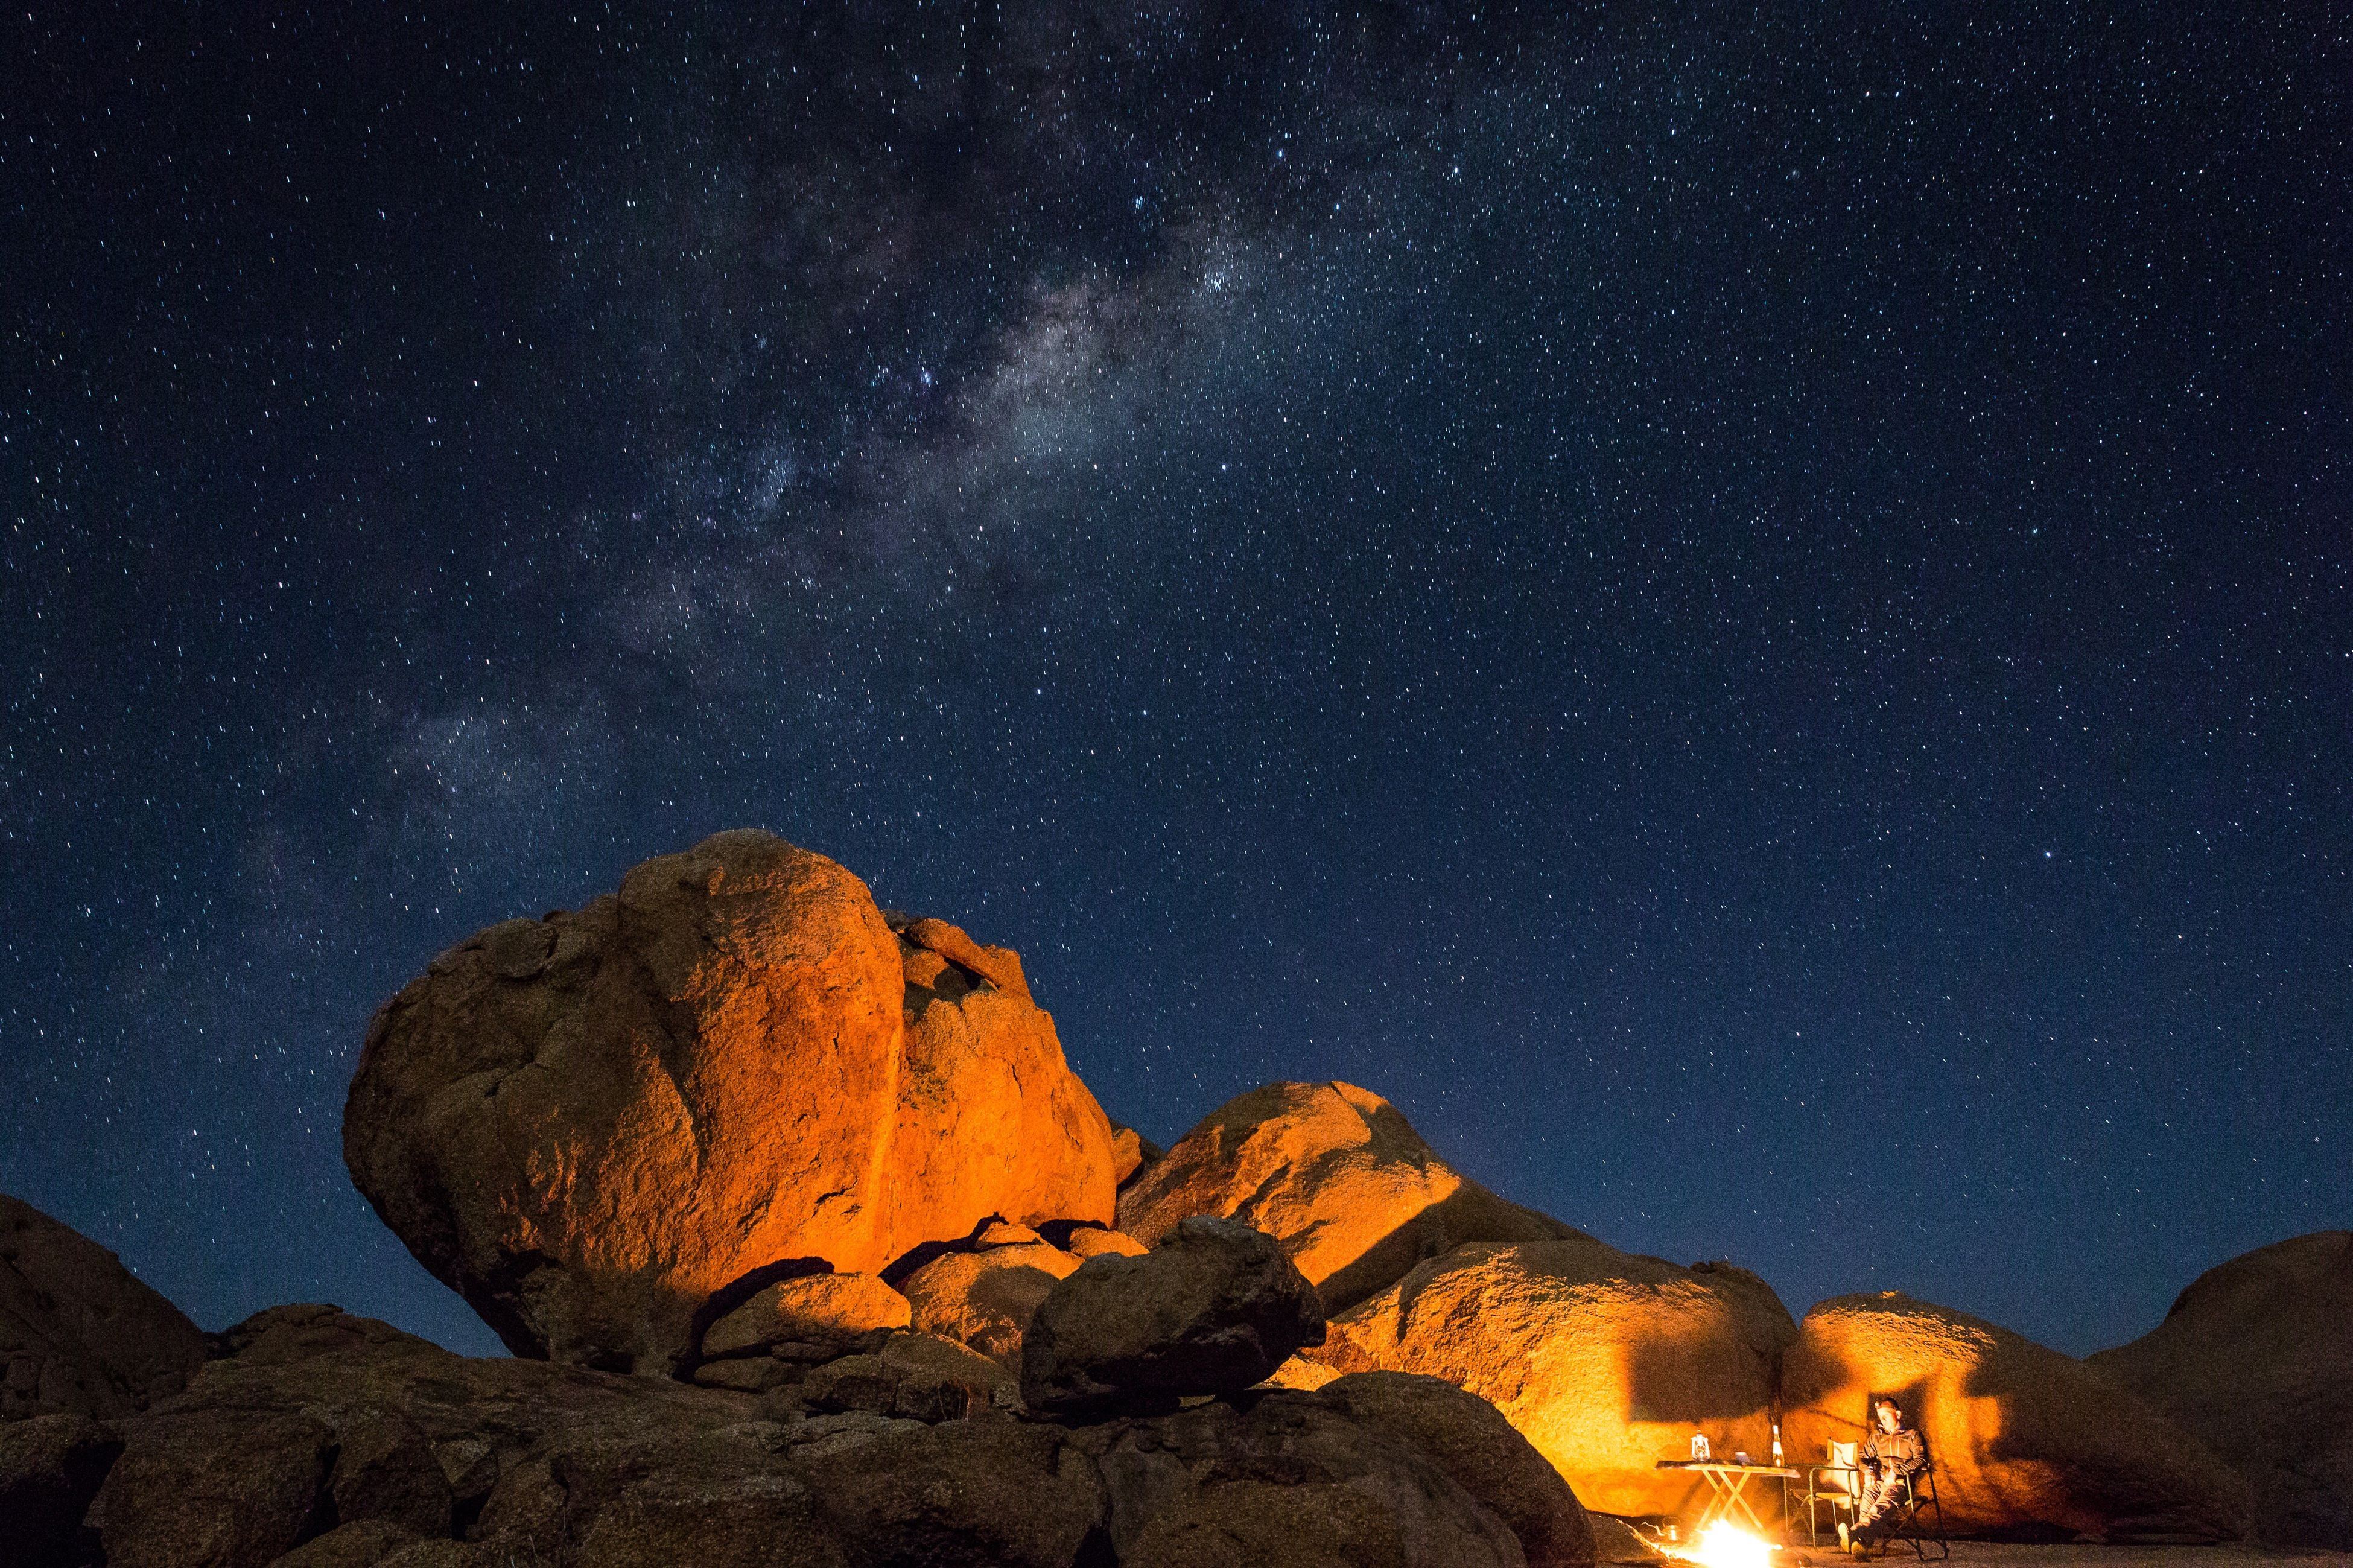 night, star - space, star field, astronomy, scenics, tranquil scene, beauty in nature, tranquility, star, galaxy, sky, low angle view, nature, space, idyllic, constellation, infinity, dark, majestic, landscape, rock formation, mountain, outdoors, no people, non-urban scene, remote, illuminated, non urban scene